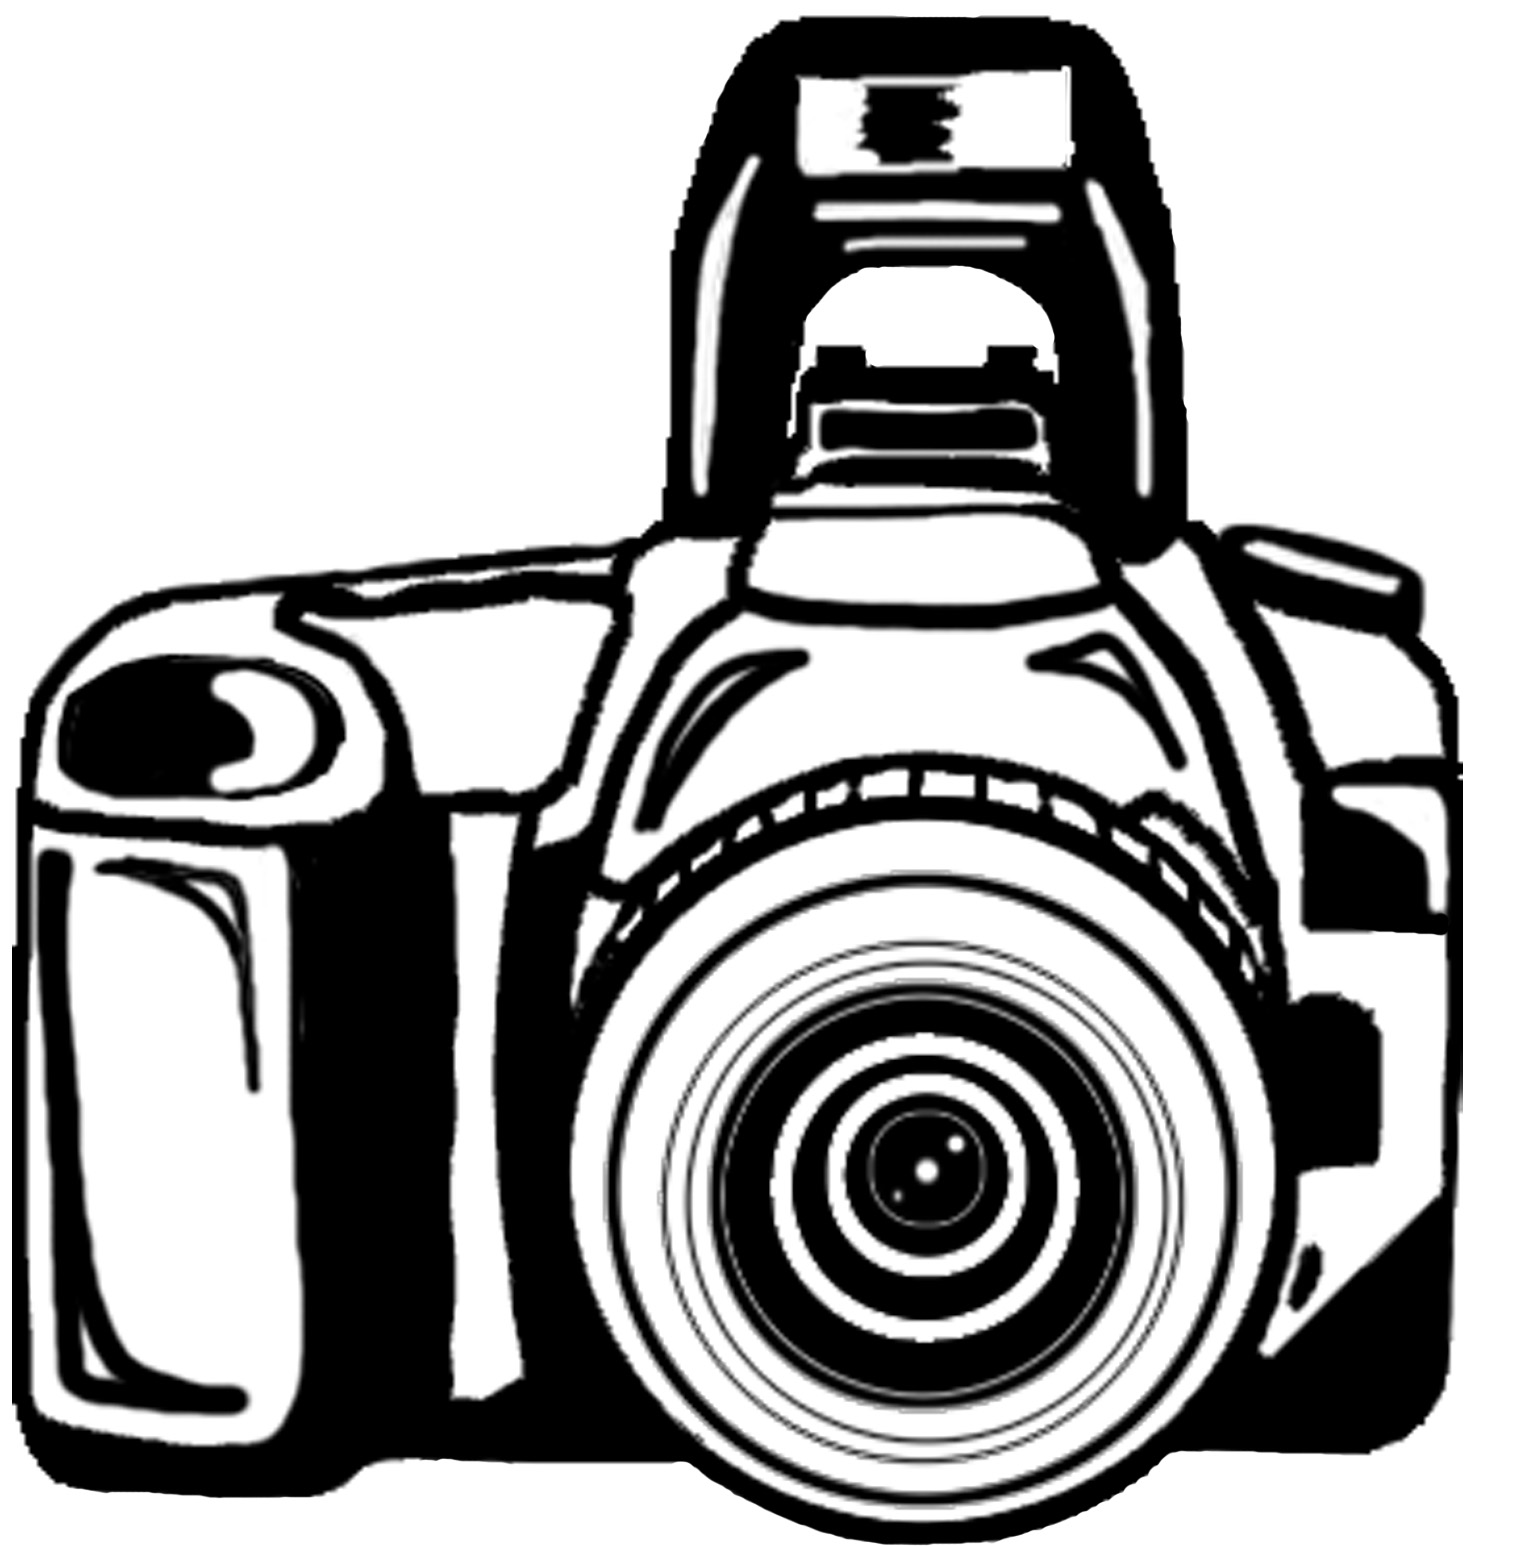 Use These Free Images For Your Websites Art Projects Reports And